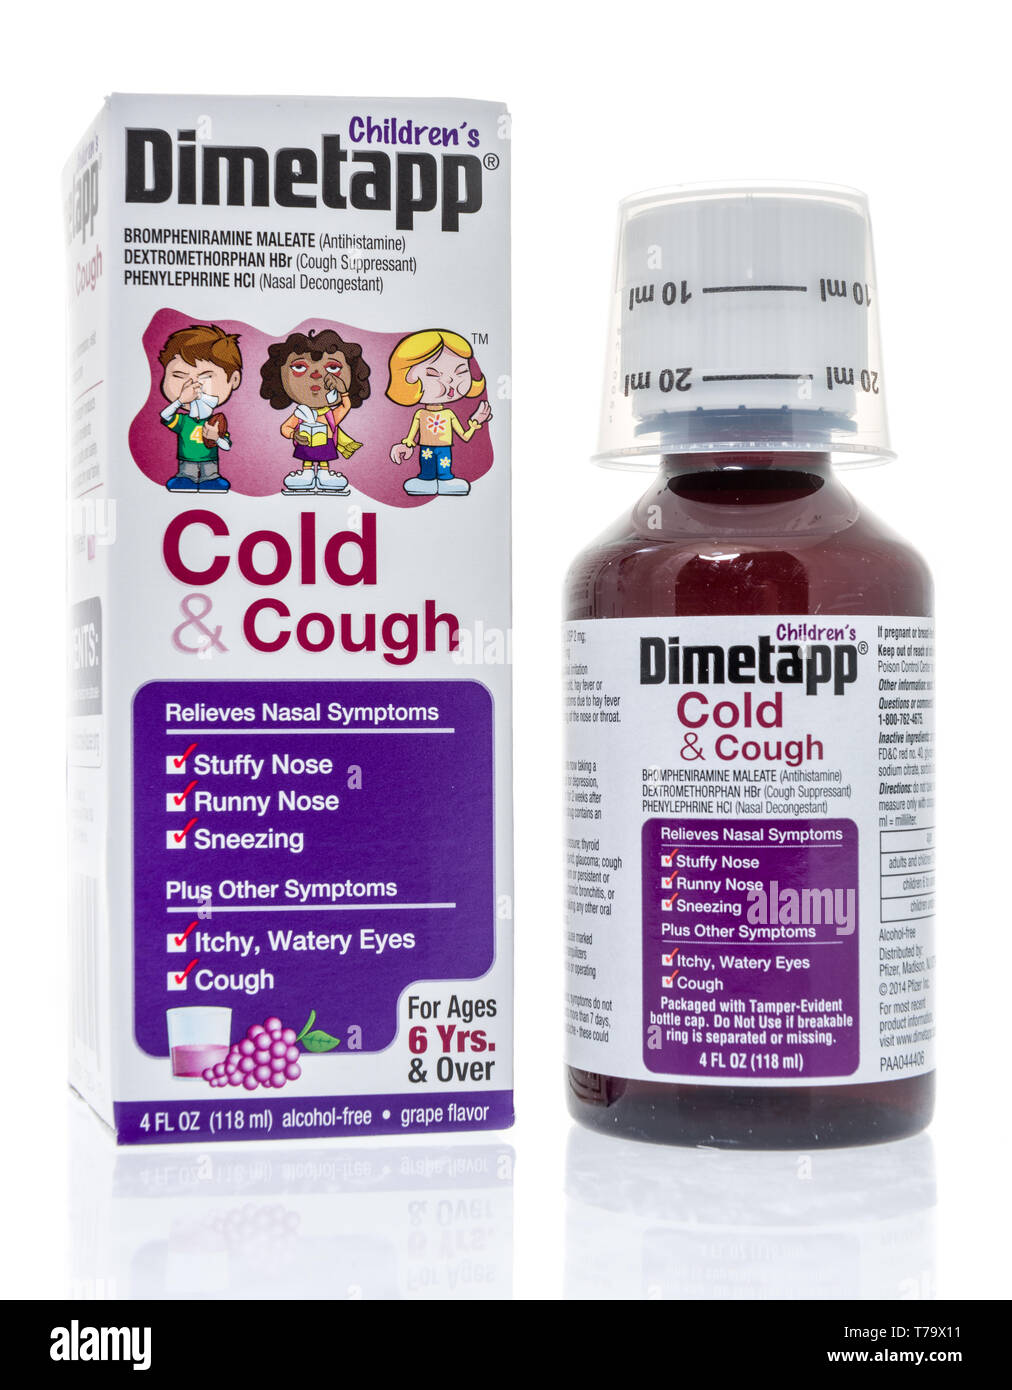 Winneconne, WI - 3 May 2019:  A package of Childrens Dimetapp cough medicine on an isolated background. - Stock Image